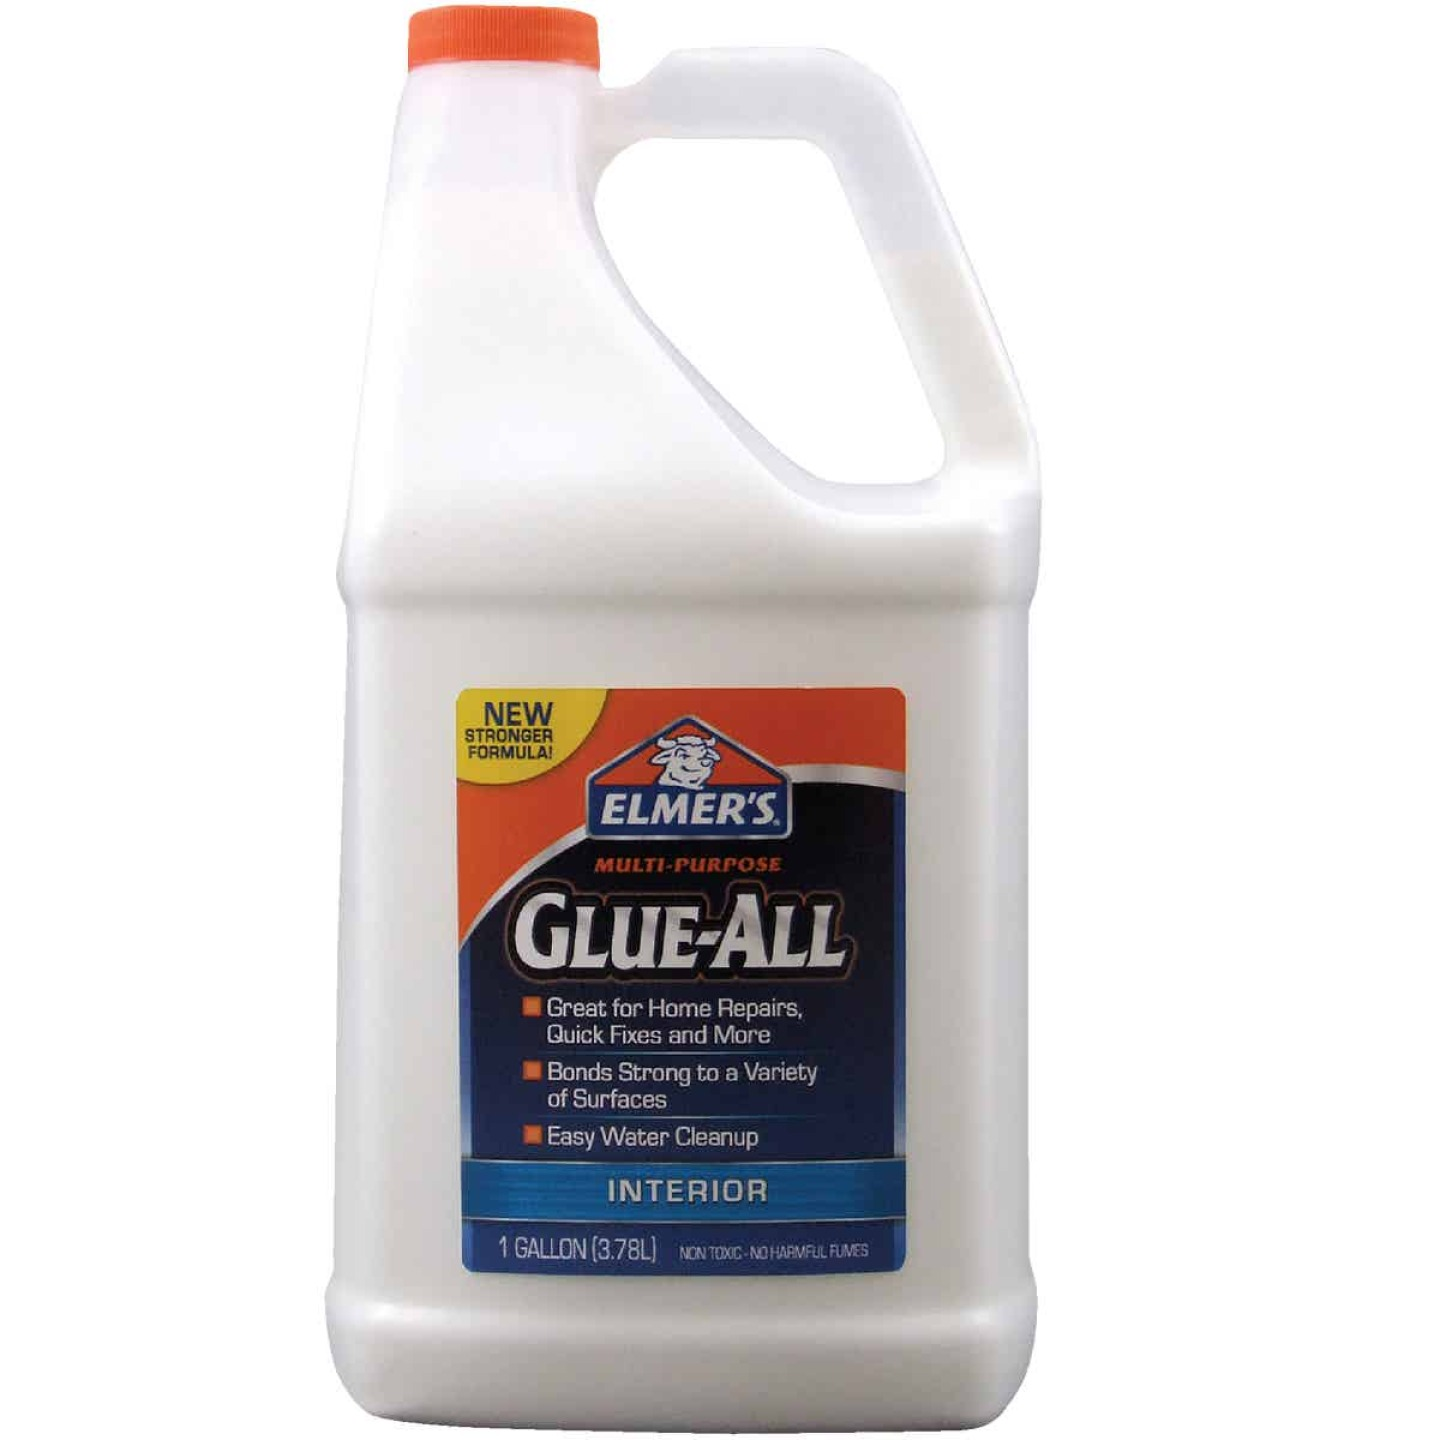 Elmer's Glue-All 1 Gallon All-Purpose Glue Image 1